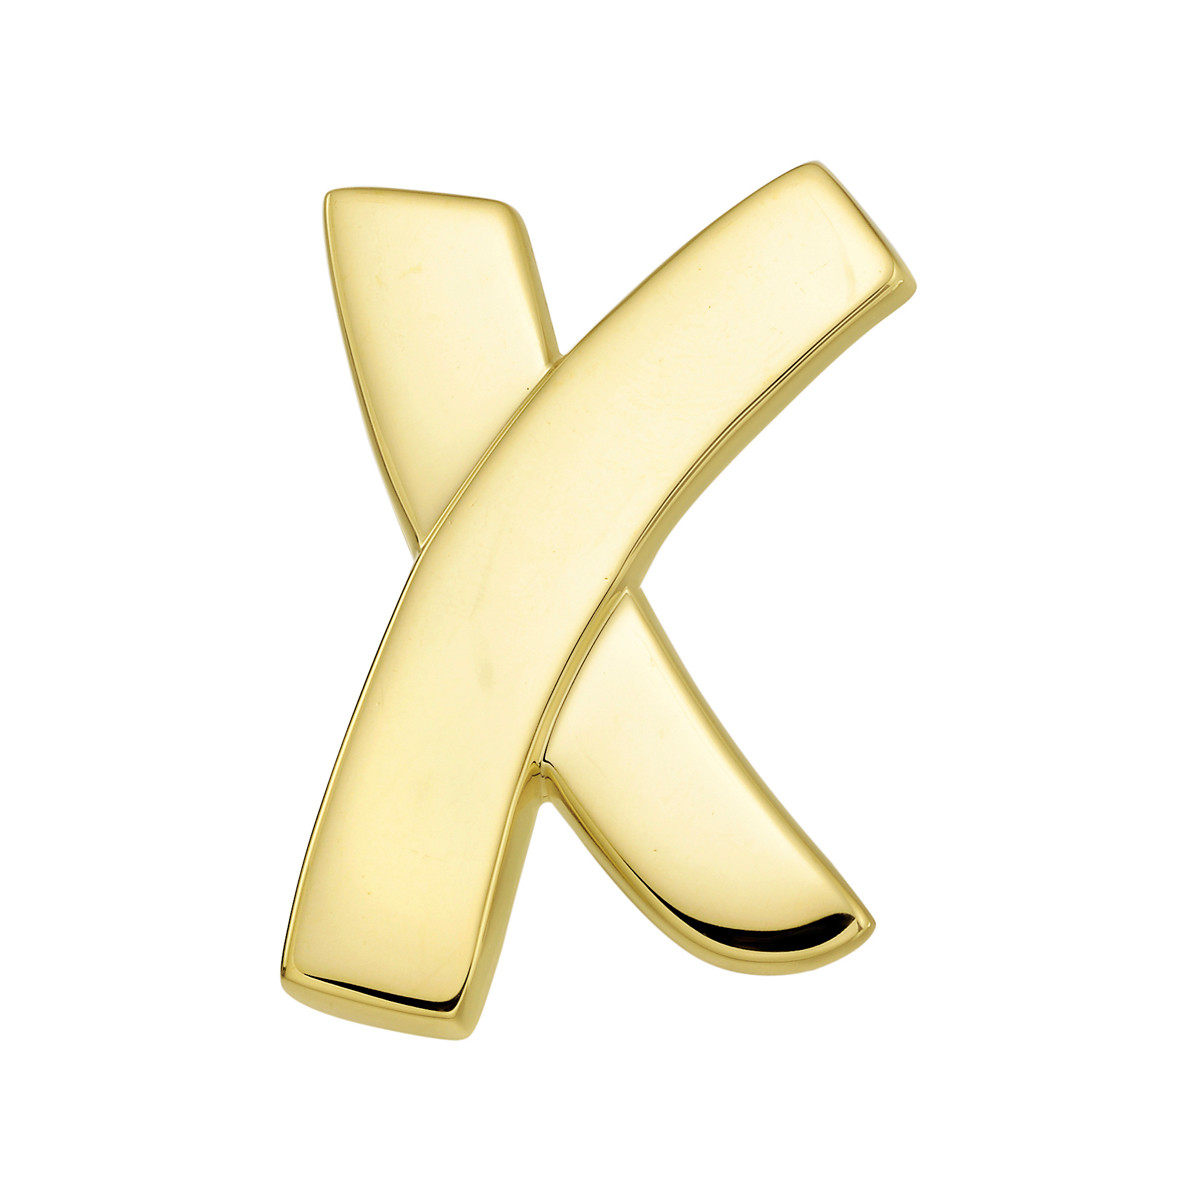 Paloma Picasso Large 18k Yellow Gold 'X' Pin